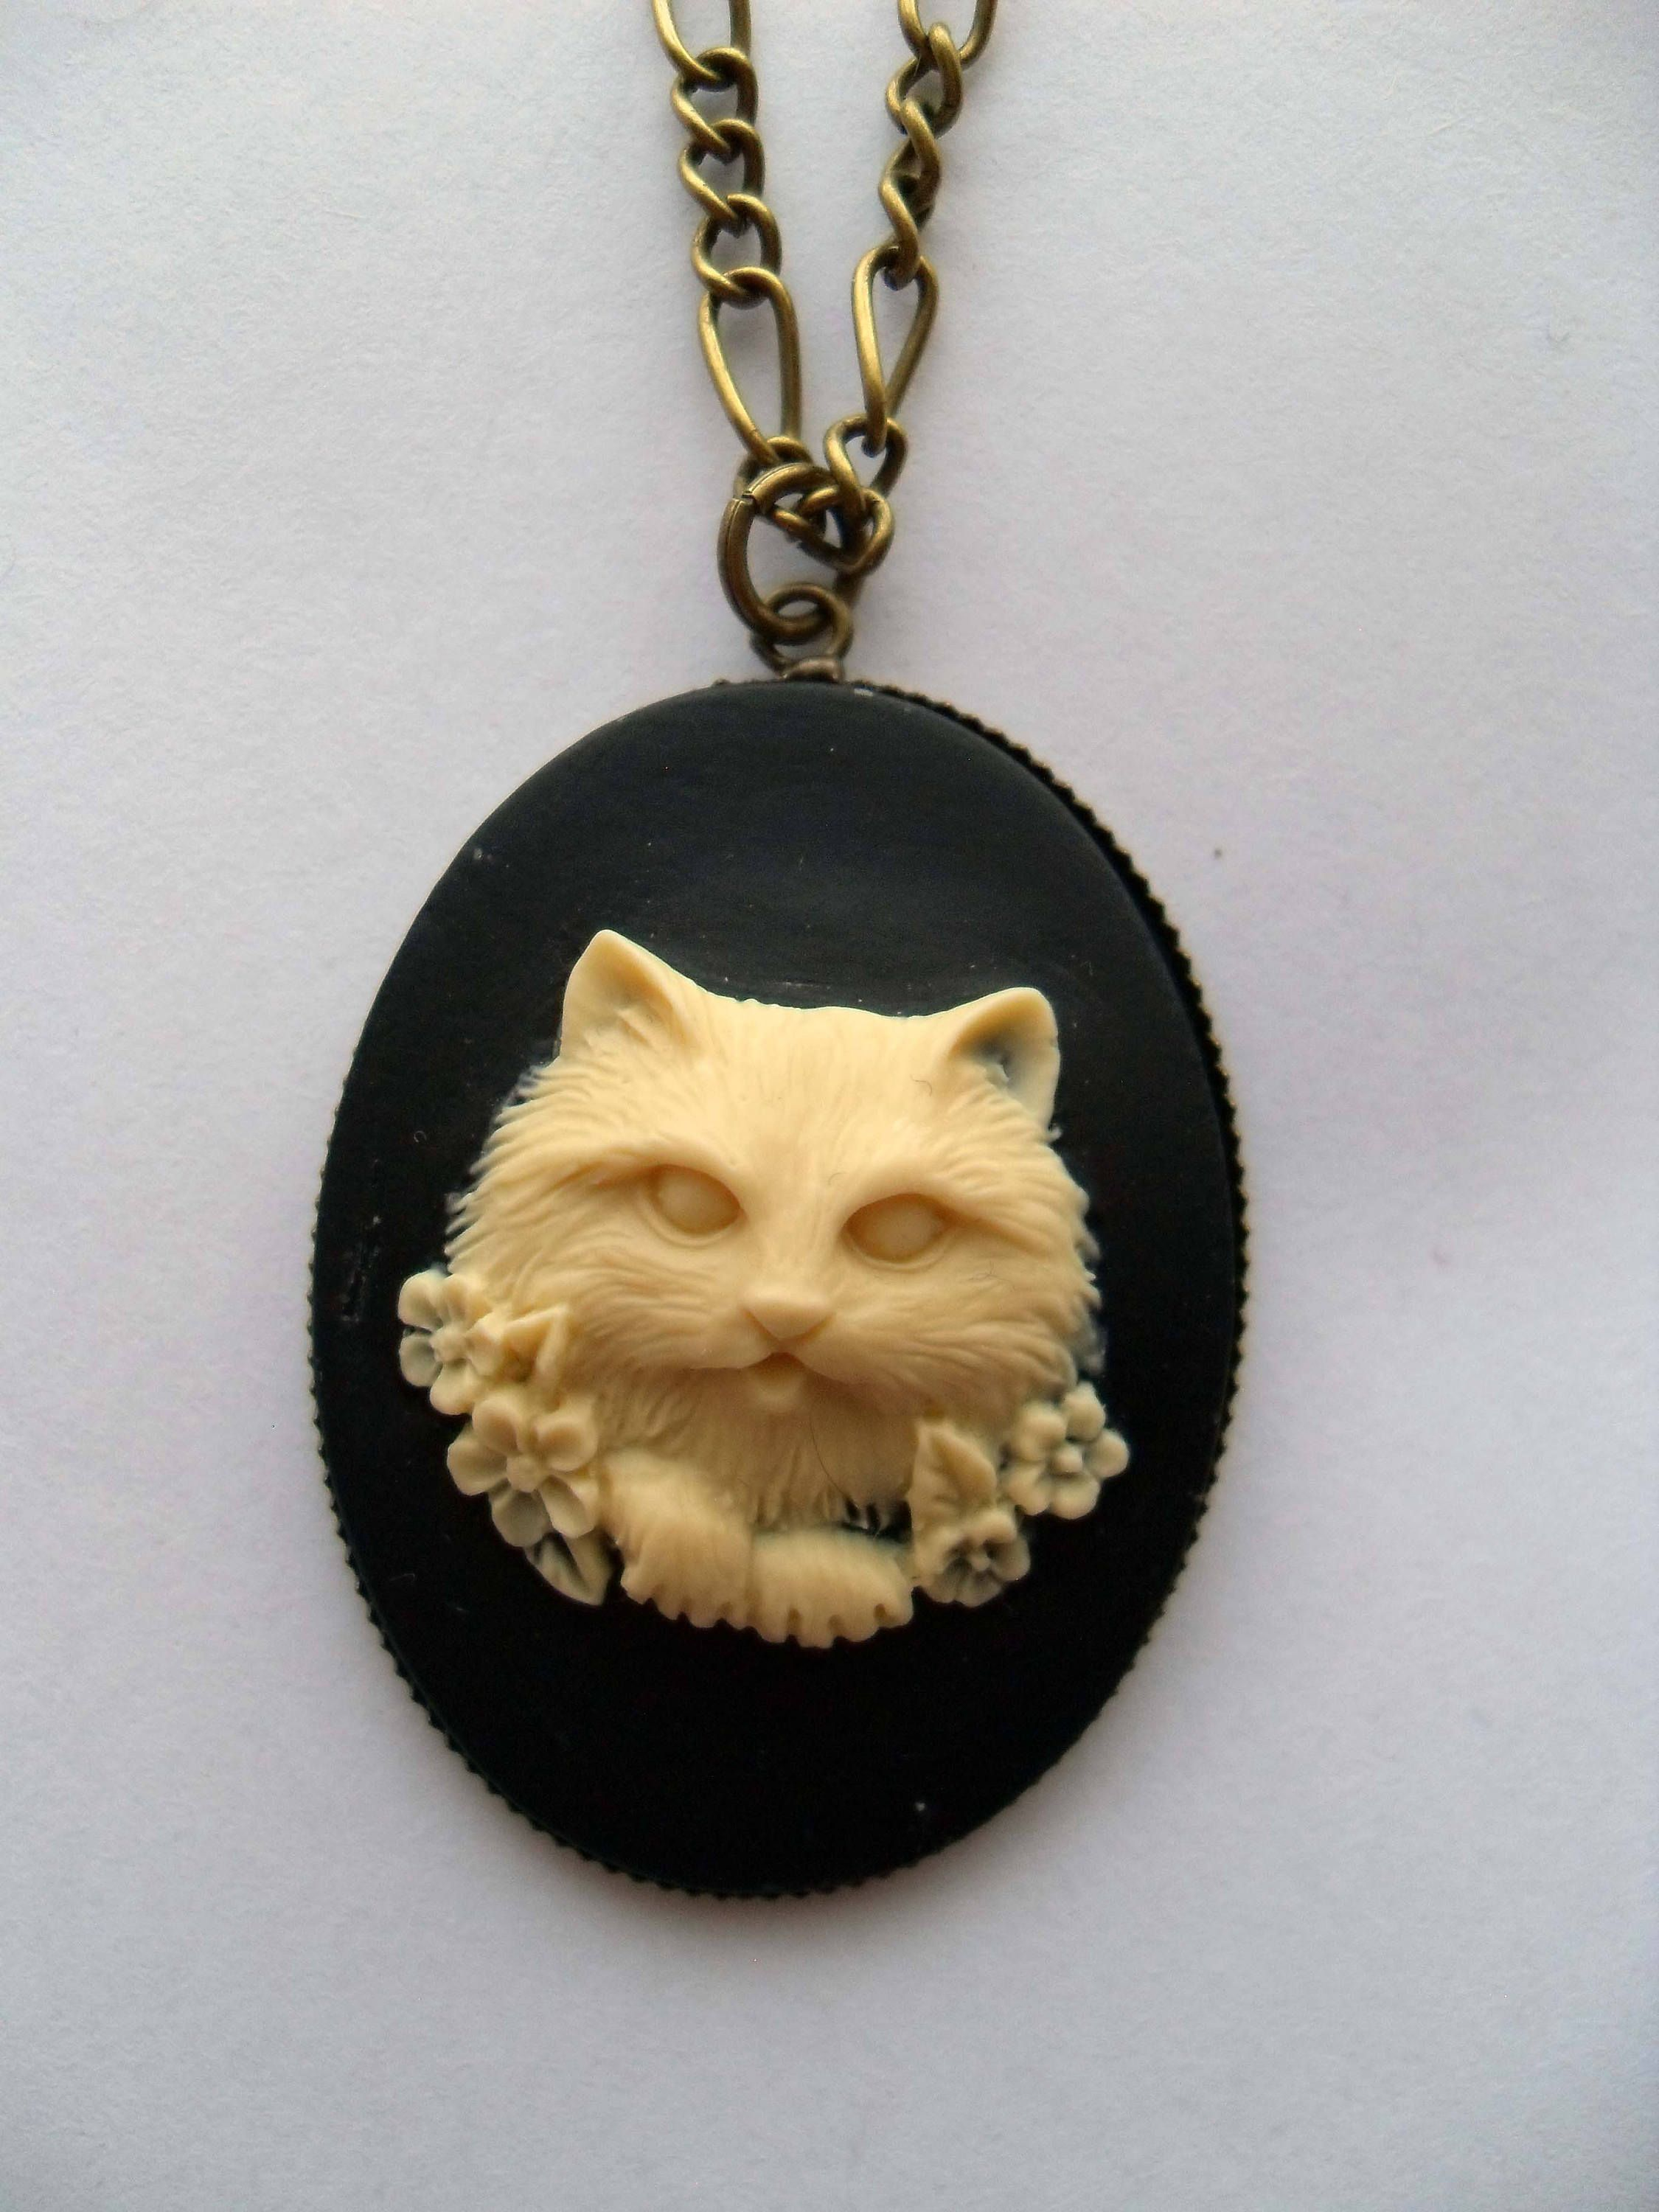 jewellery pin jewelry pinterest little saba catfish cat necklace